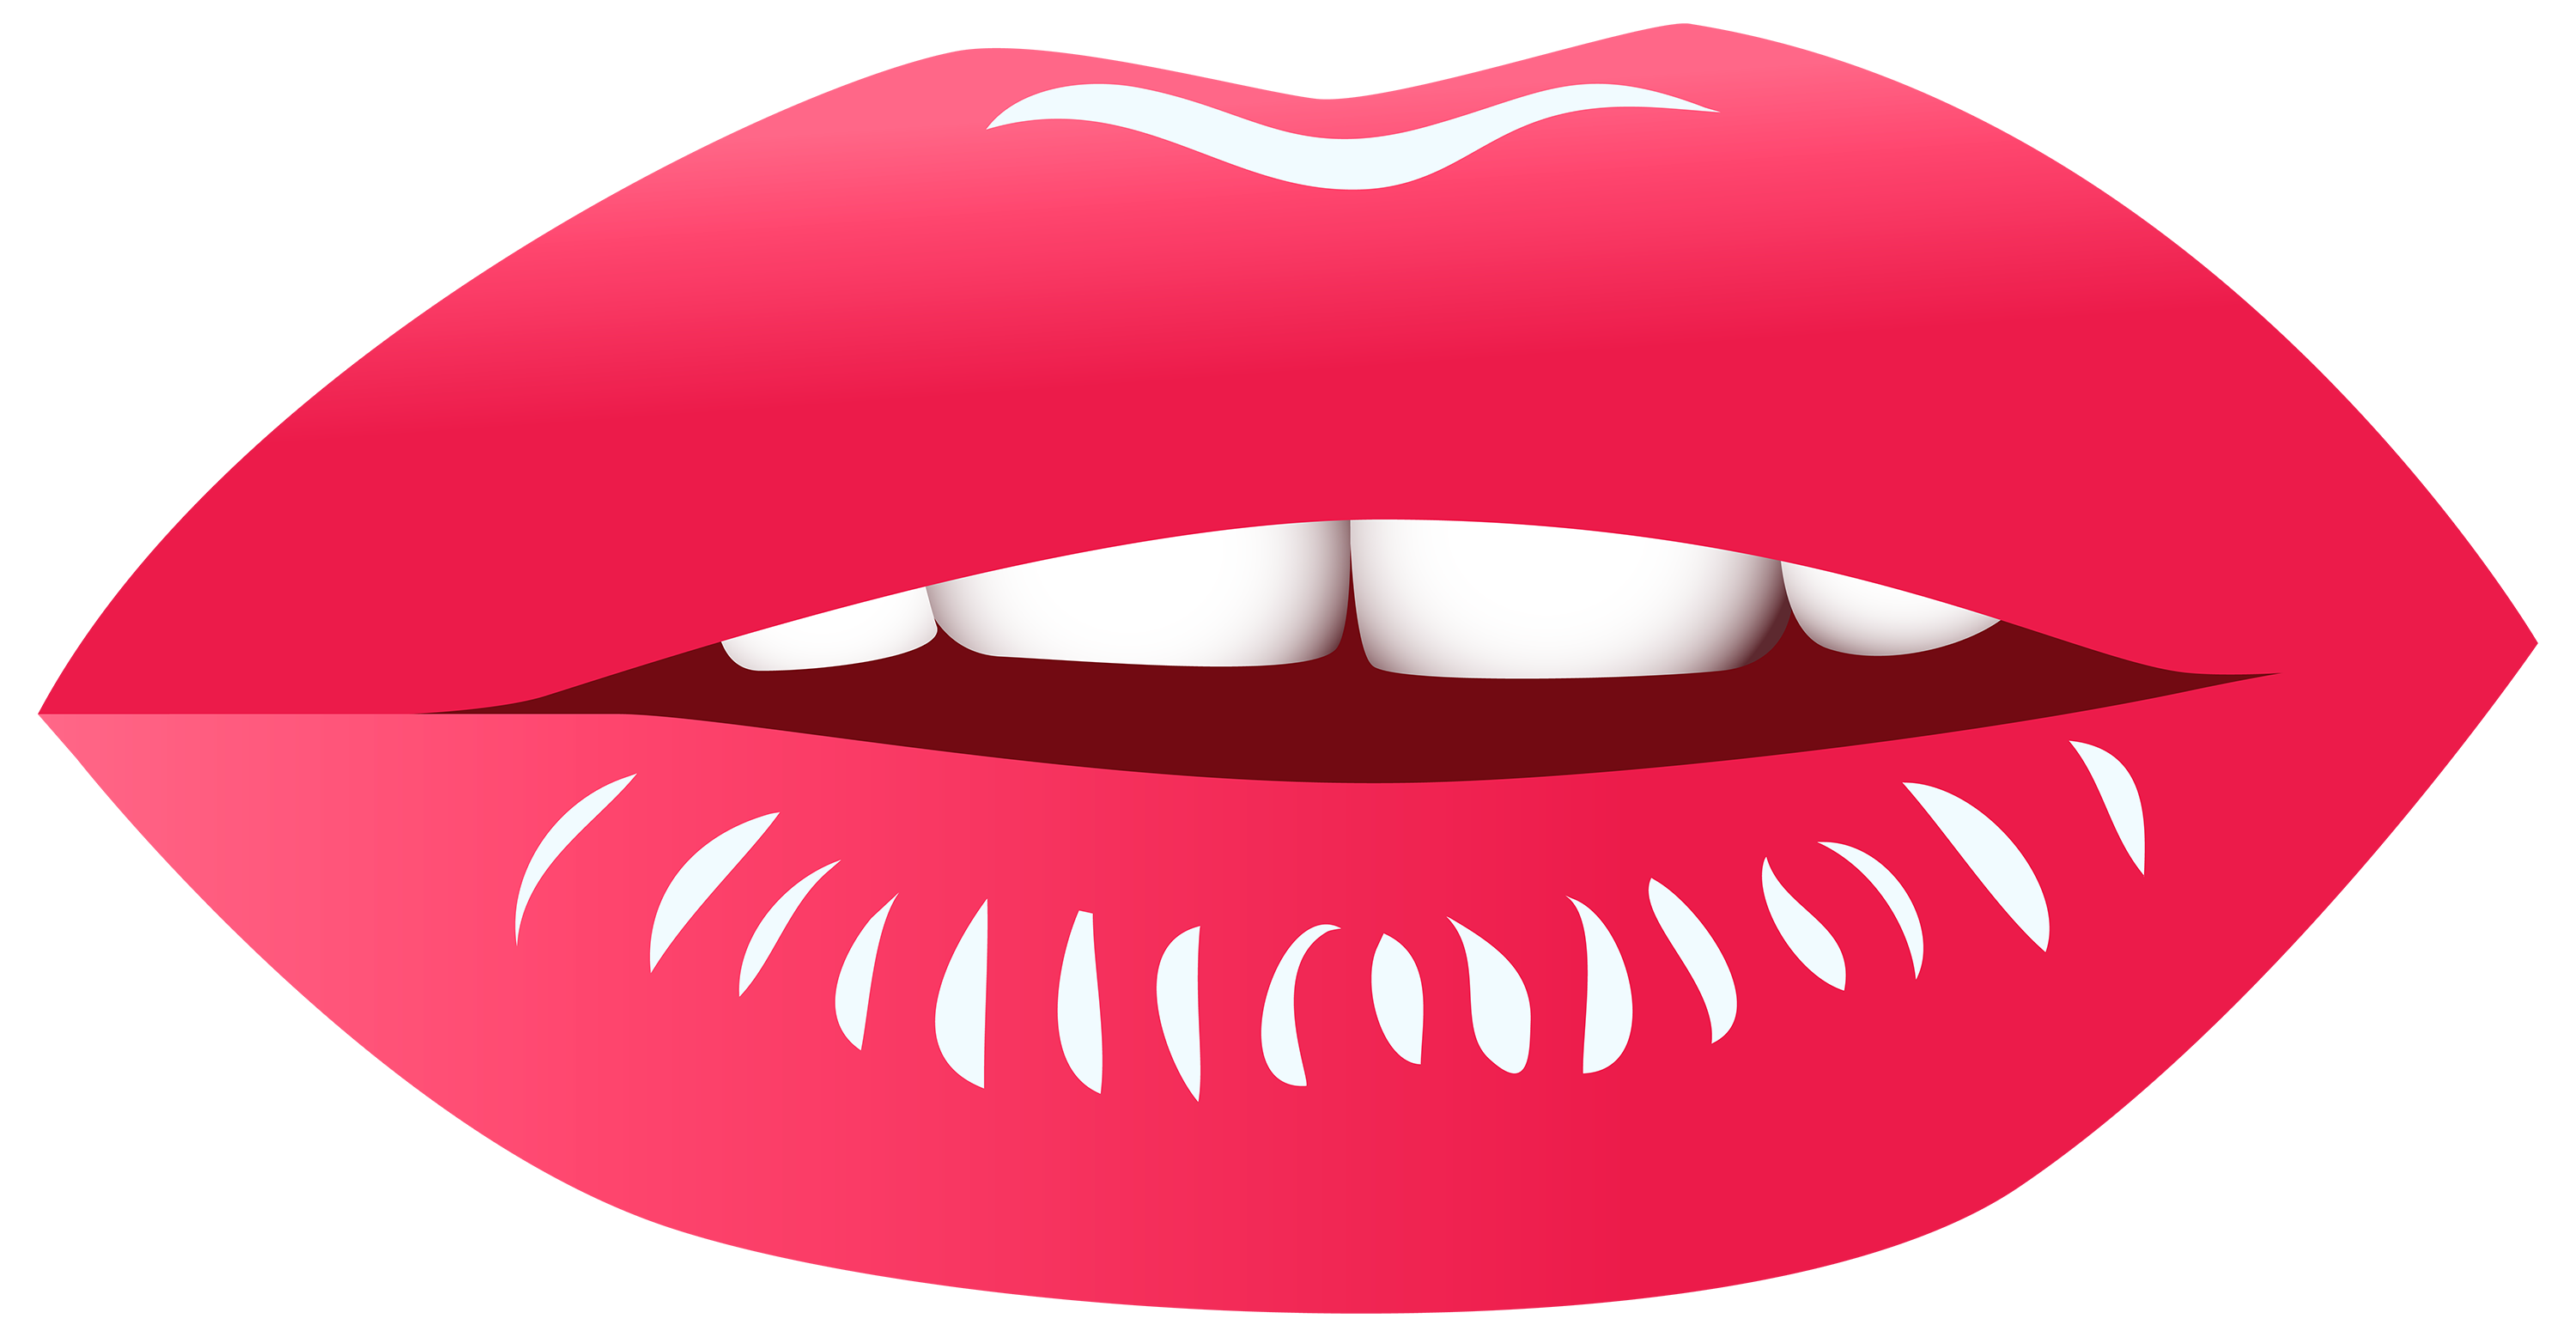 3000x1557 Mouth Clip Art Free Clipart Images 3